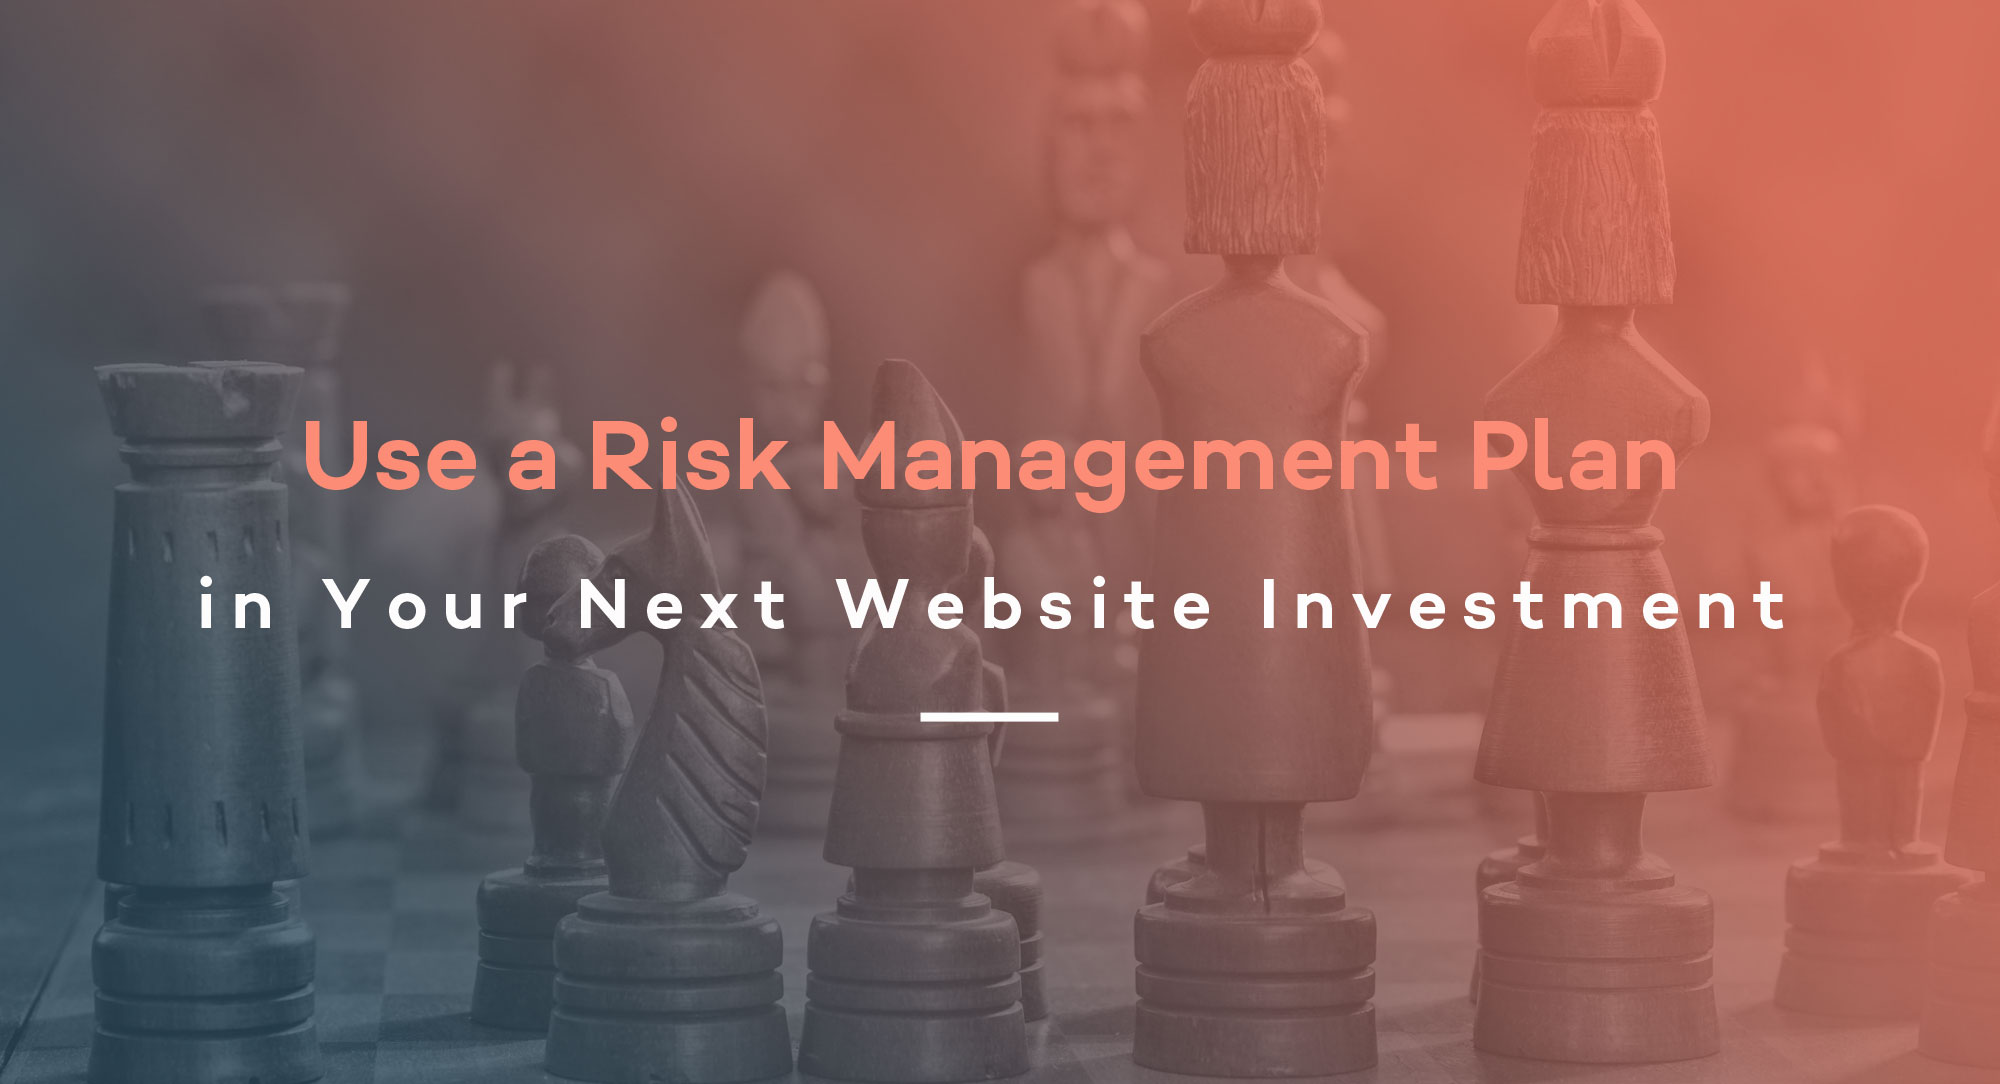 Use a Risk Management Plan in Your Next Website Investment